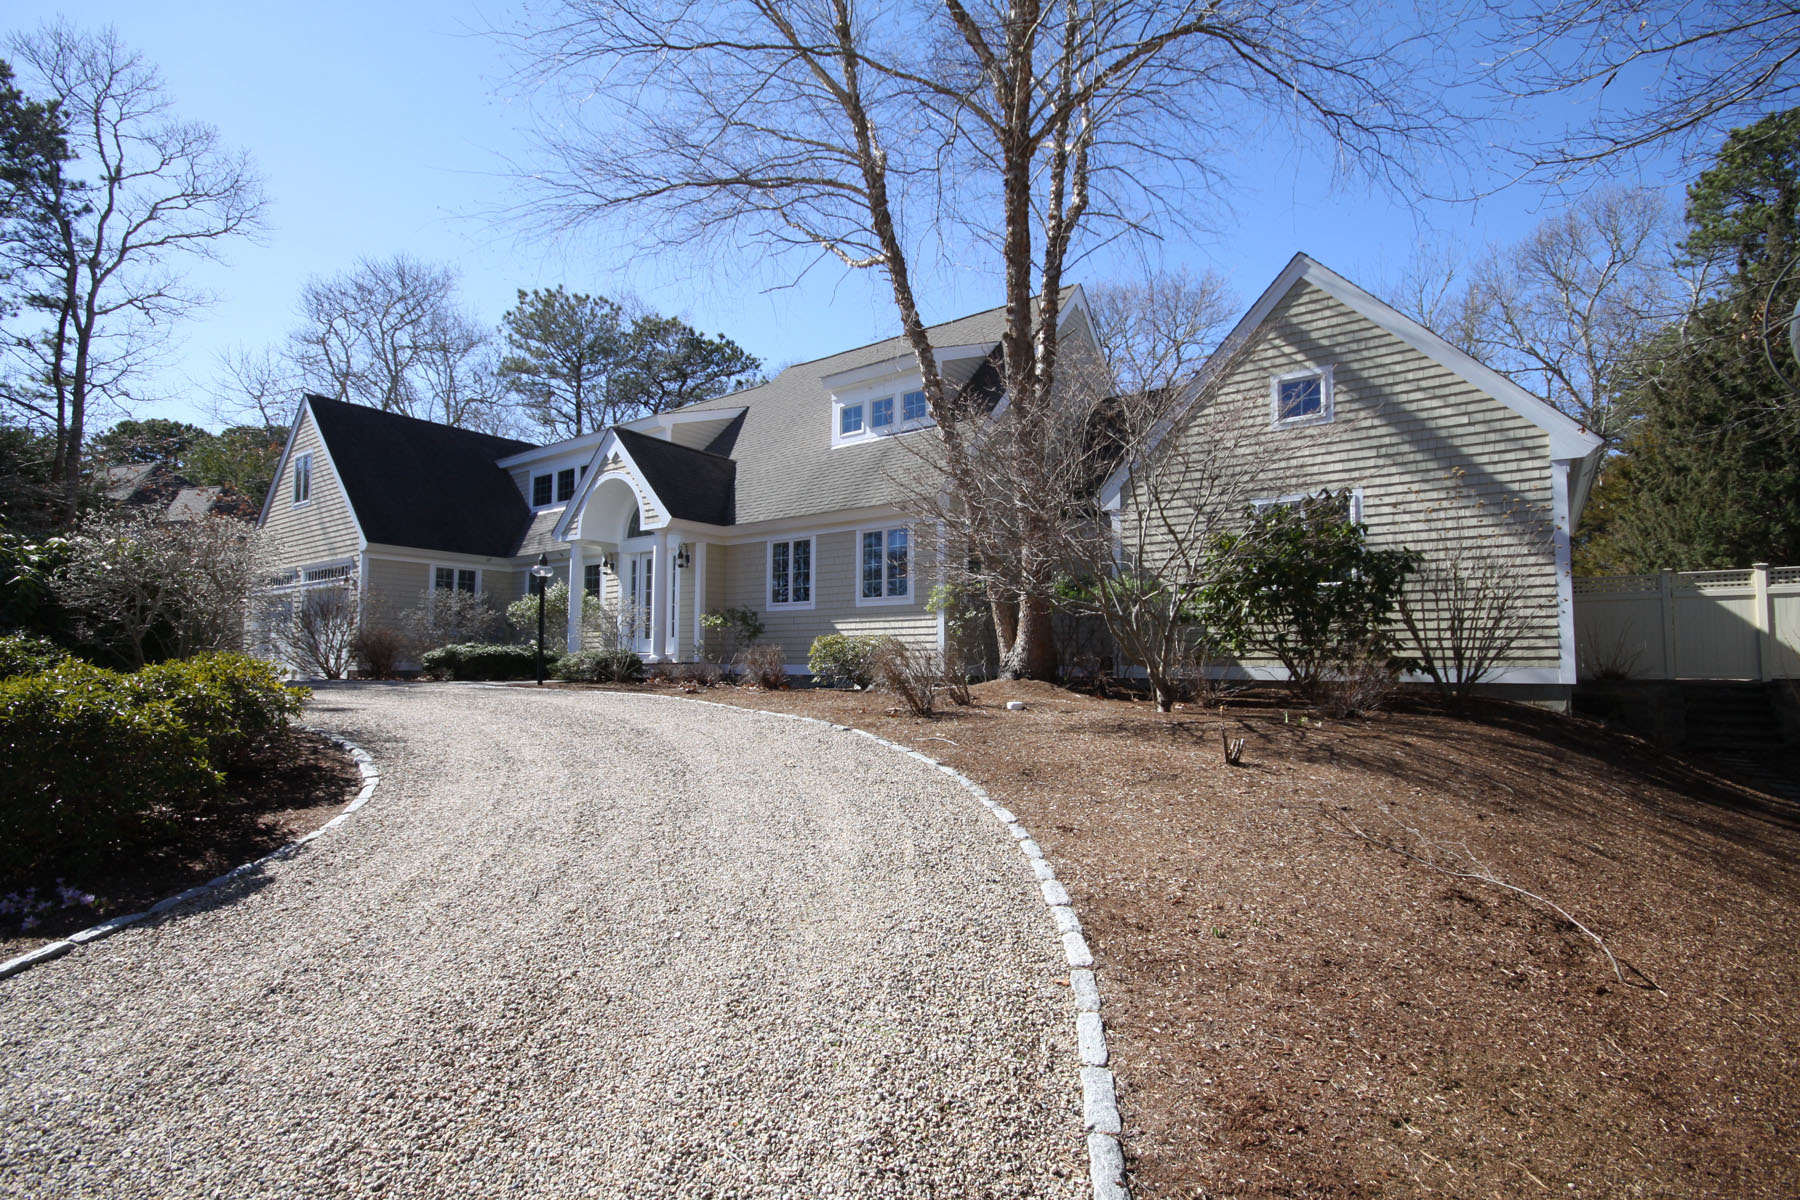 Villa per Vendita alle ore EXQUISITE FAMILY HOME 120 Tide Run New Seabury, Massachusetts, 02649 Stati Uniti